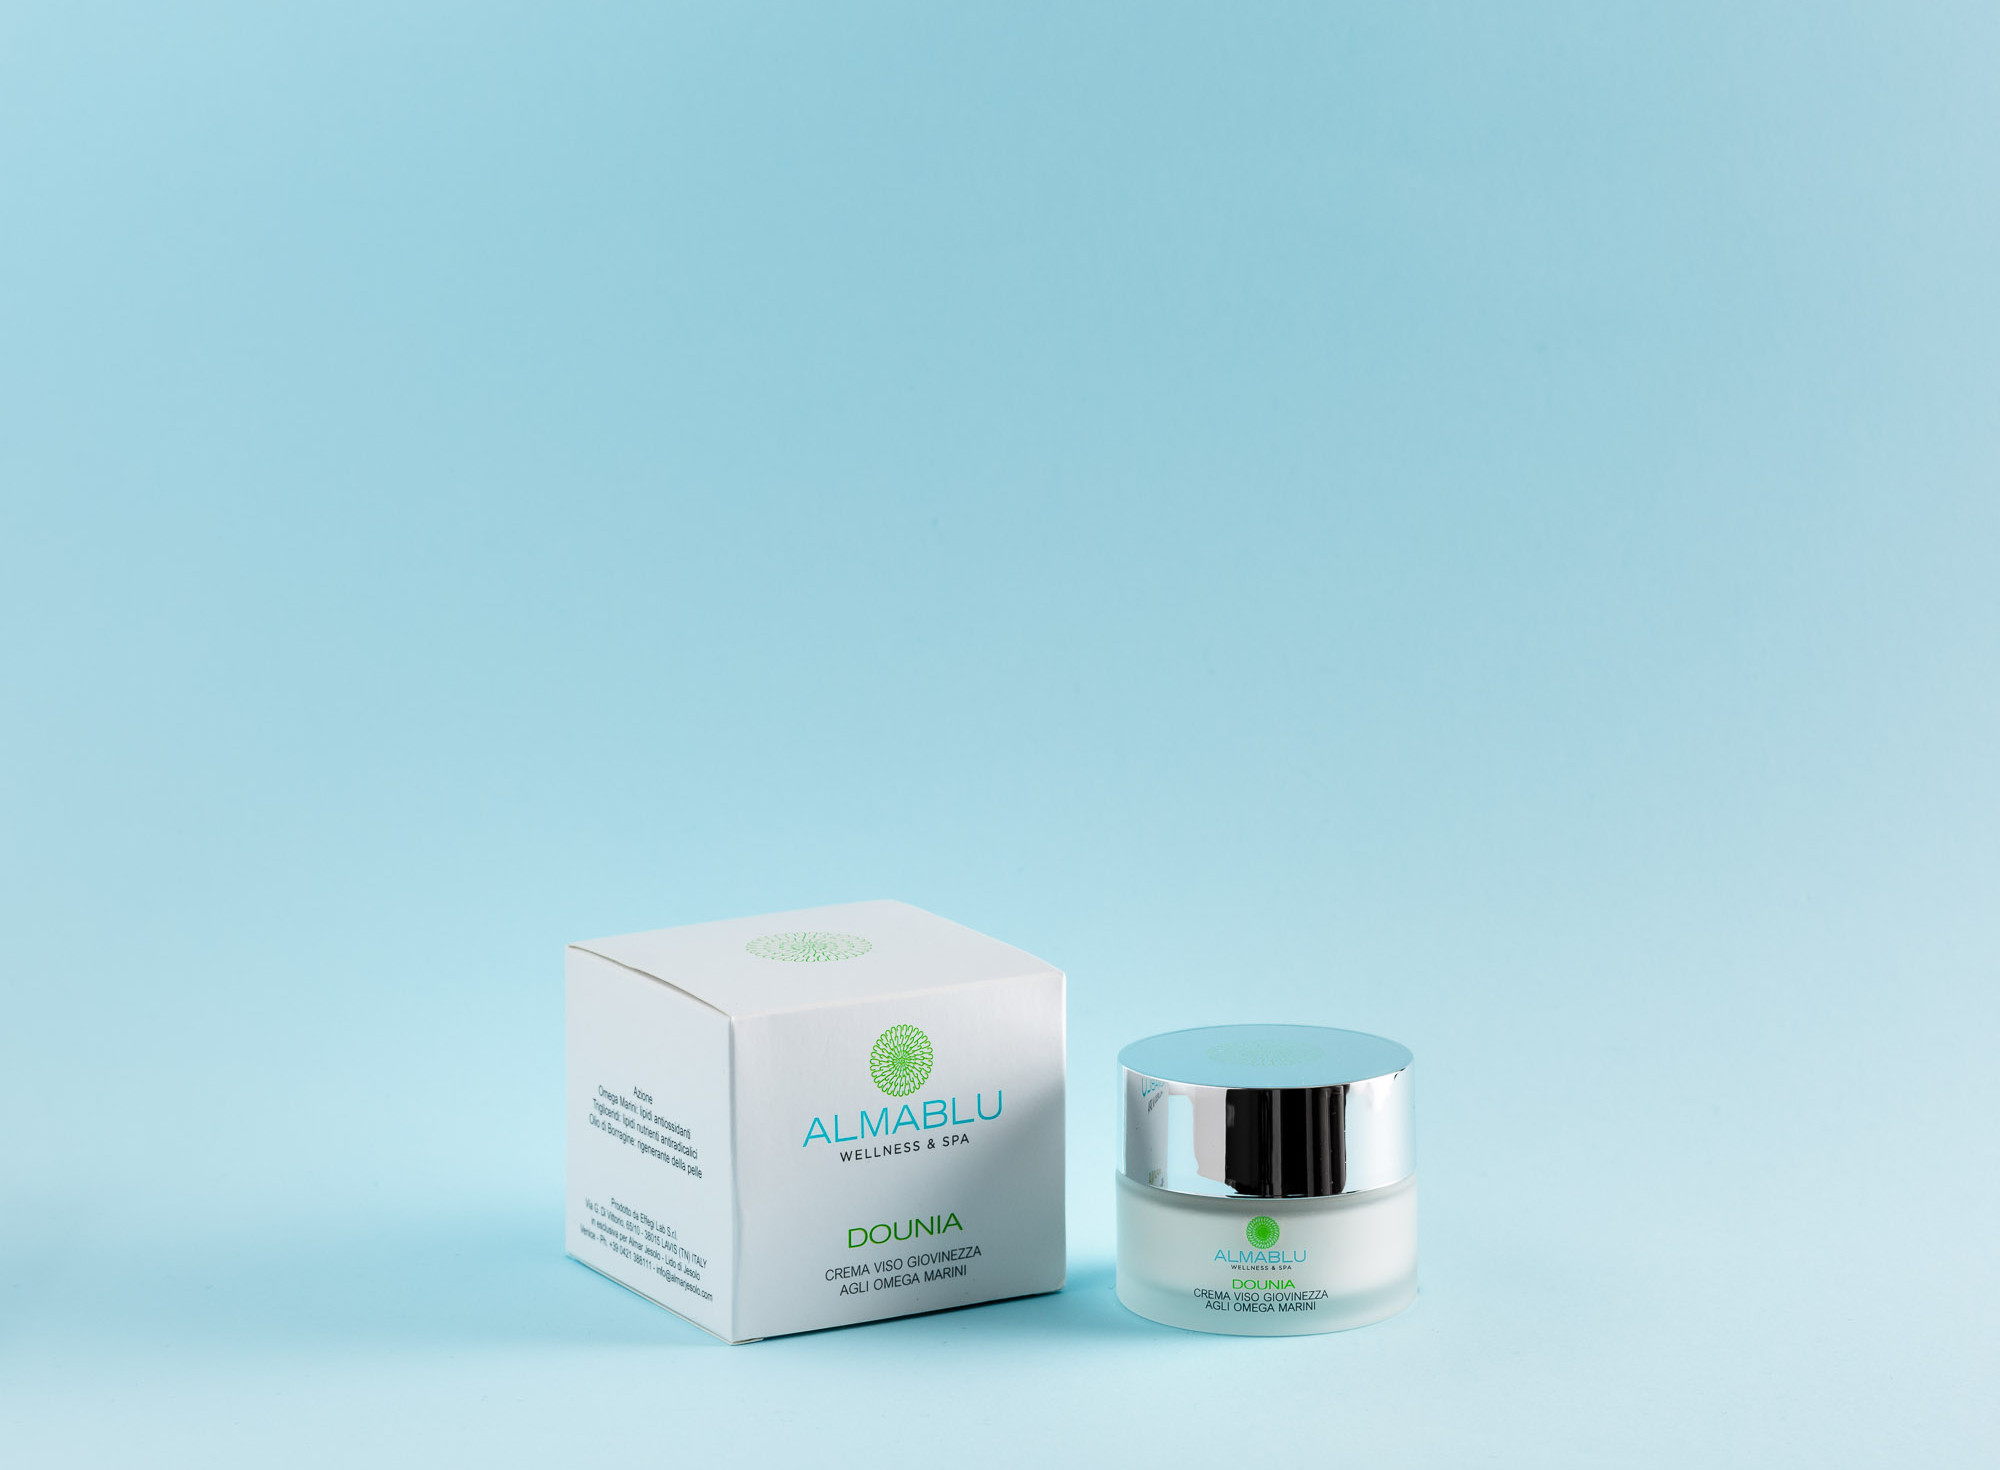 Almablu Dounia: youth cream with marine omega fatty acids.